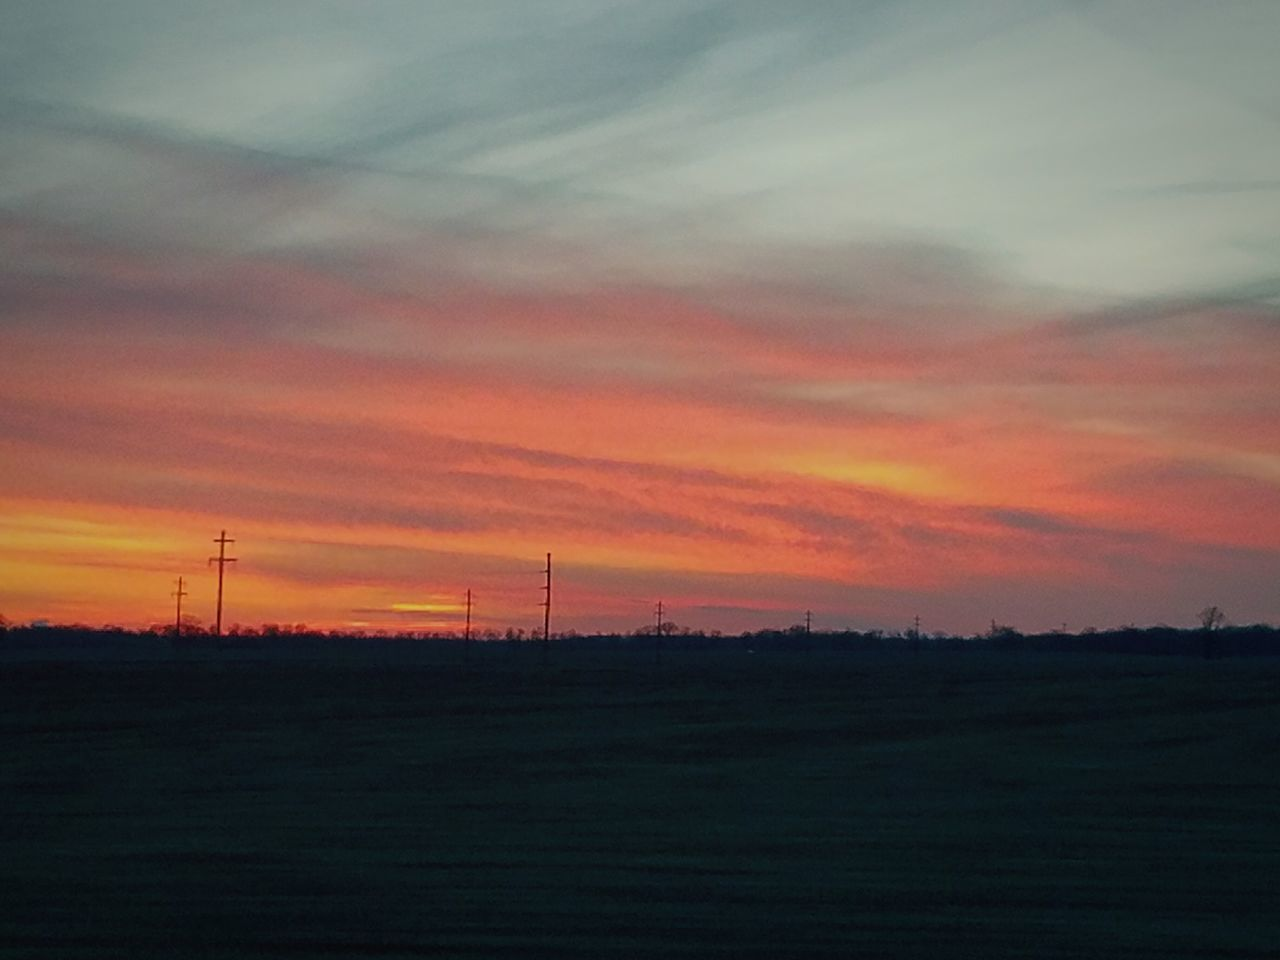 sunset, nature, sky, no people, landscape, tranquility, scenics, cloud - sky, beauty in nature, field, fuel and power generation, tranquil scene, outdoors, silhouette, wind power, alternative energy, wind turbine, electricity pylon, rural scene, technology, tree, windmill, day, industrial windmill